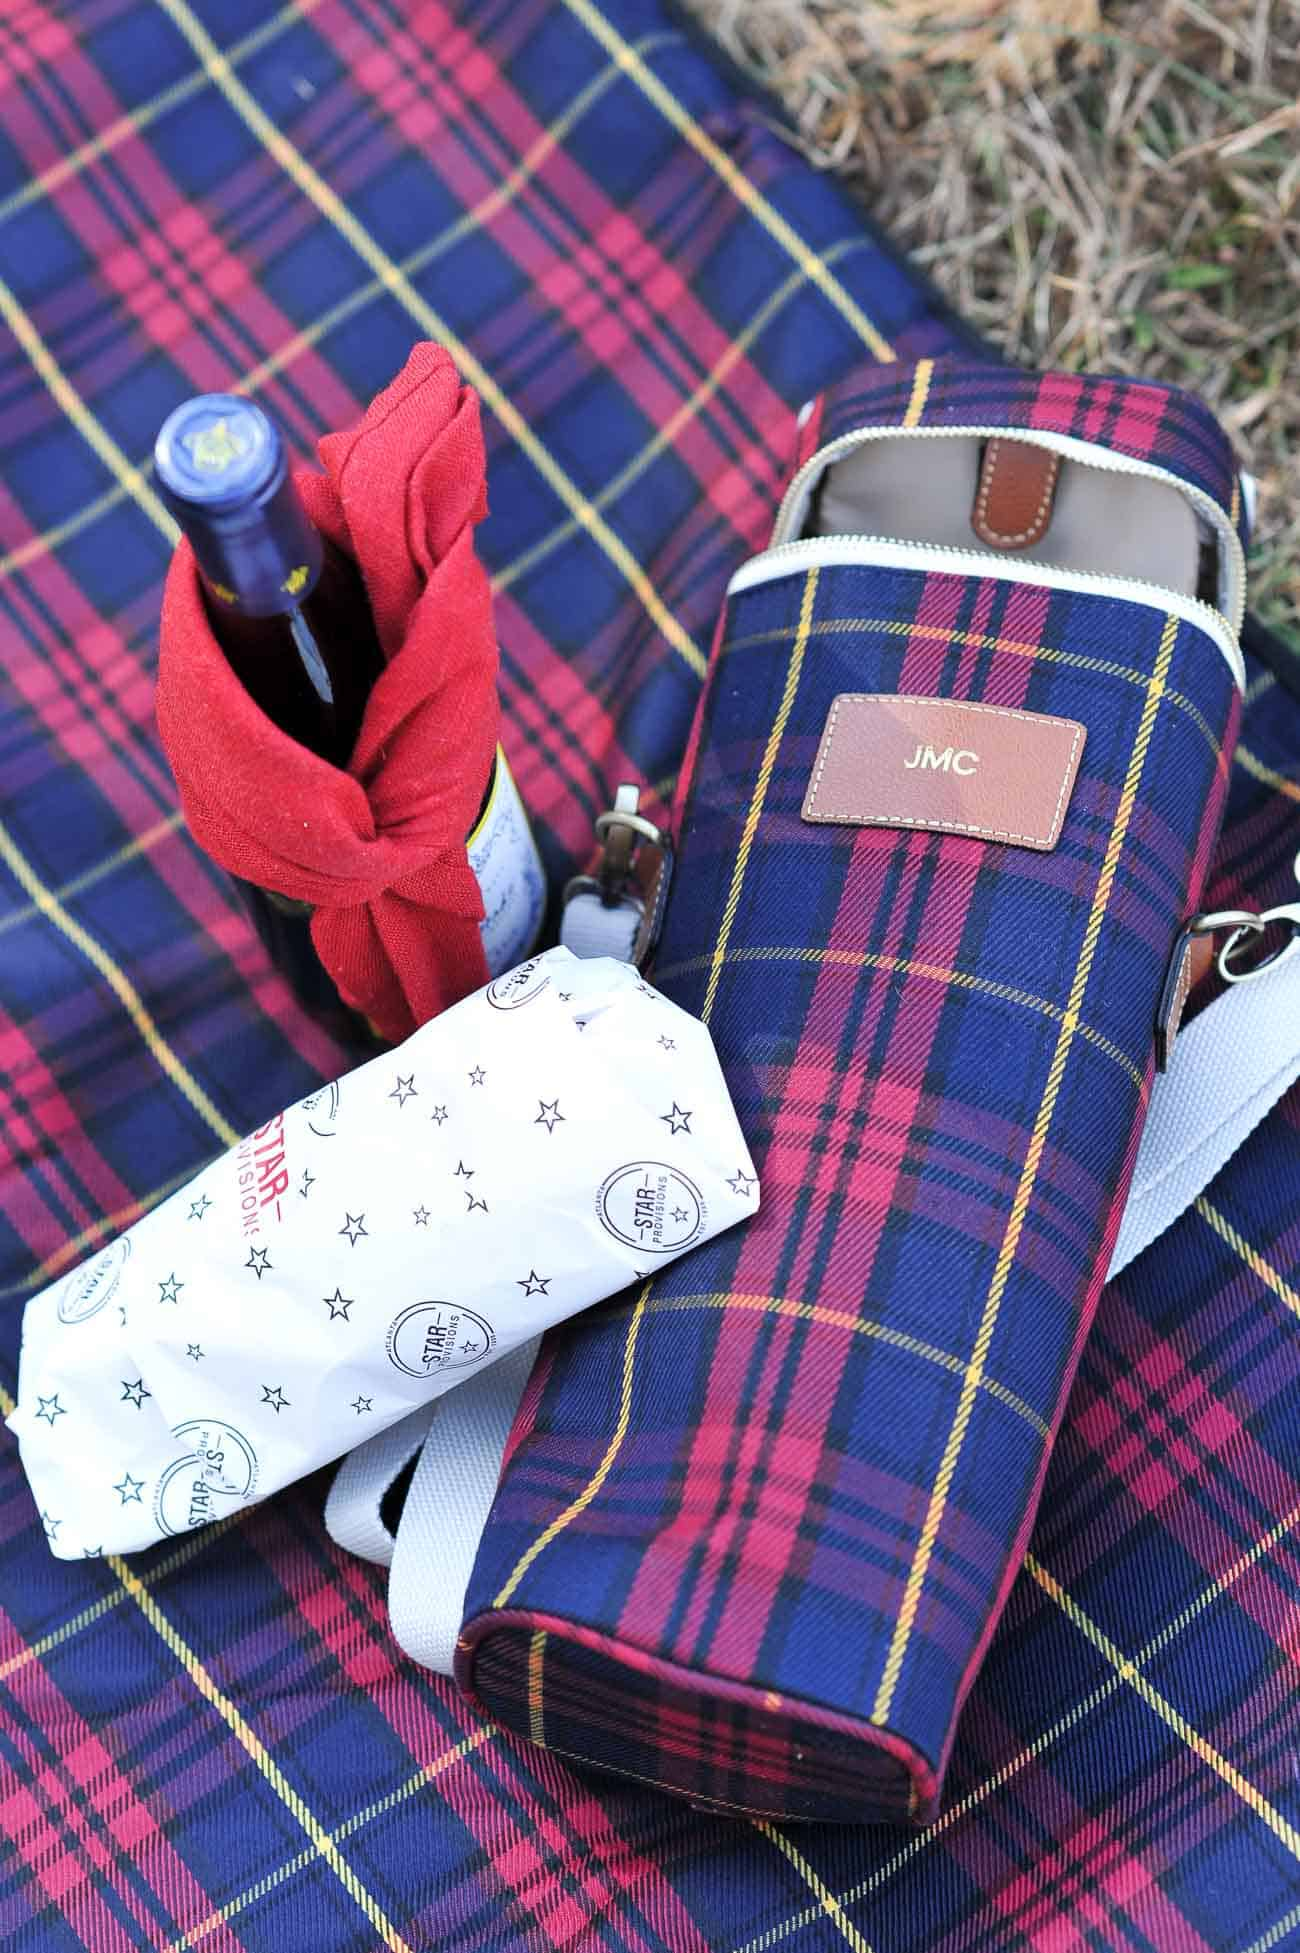 Christmas tree farm, winter picnic, fall photo ideas, plaid - My Style Vita @mystylevita